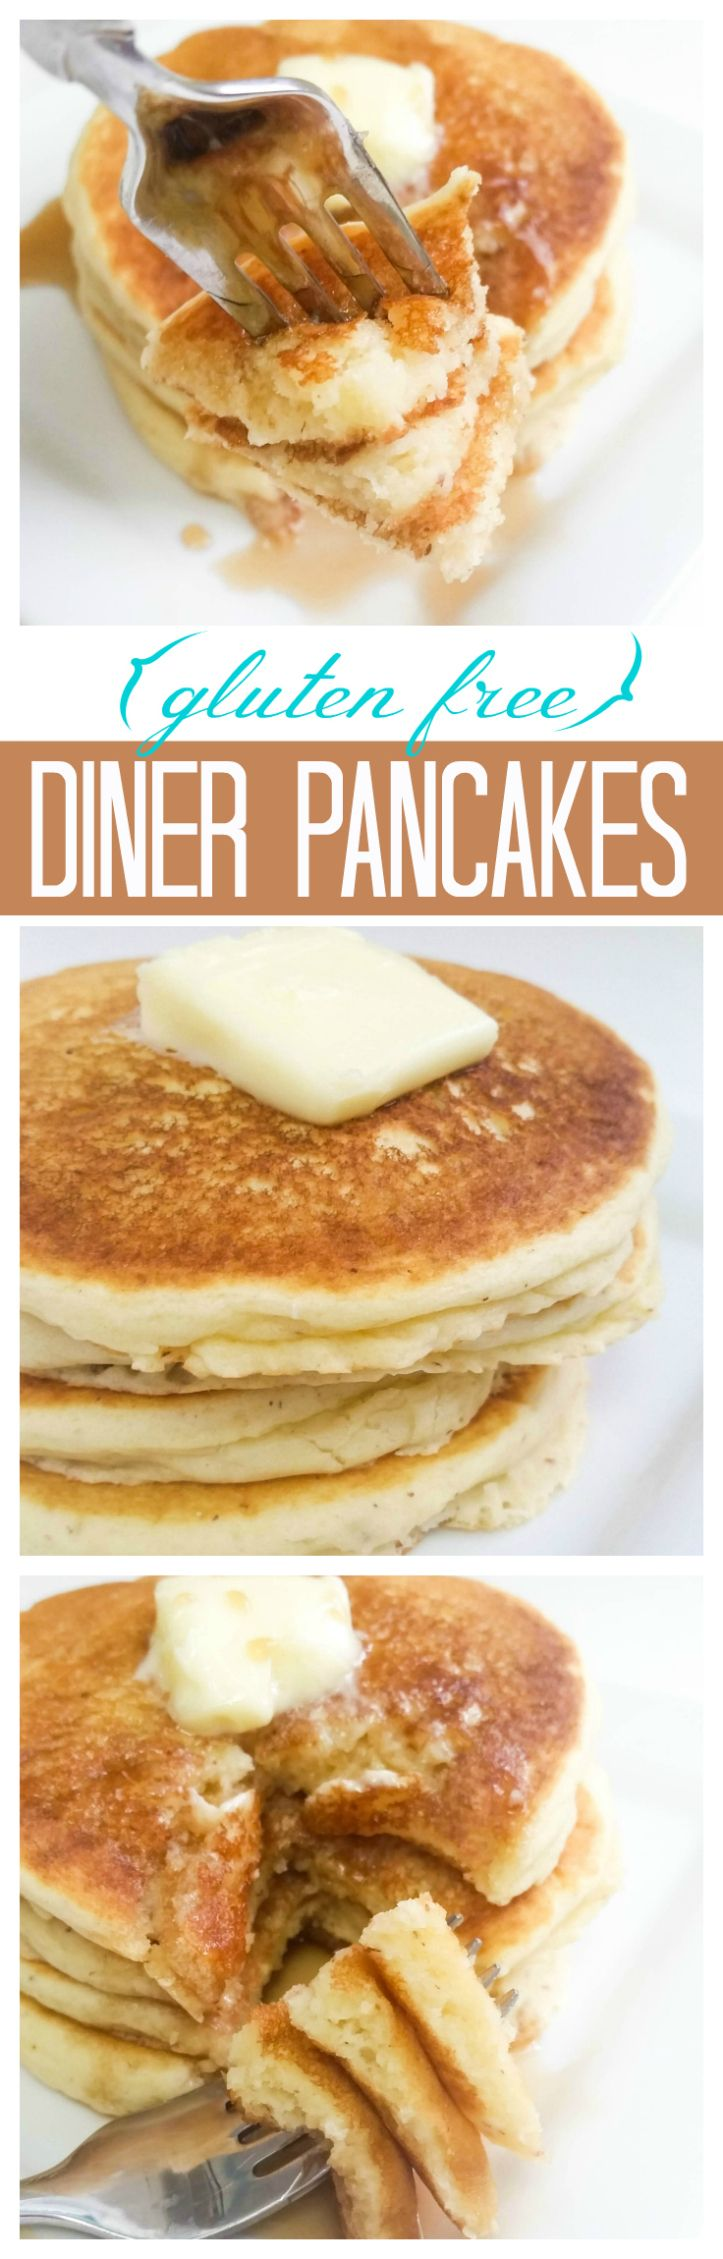 Fluffy pancakes that taste just like the kind you get in an old-fashioned diner, but without the gluten!